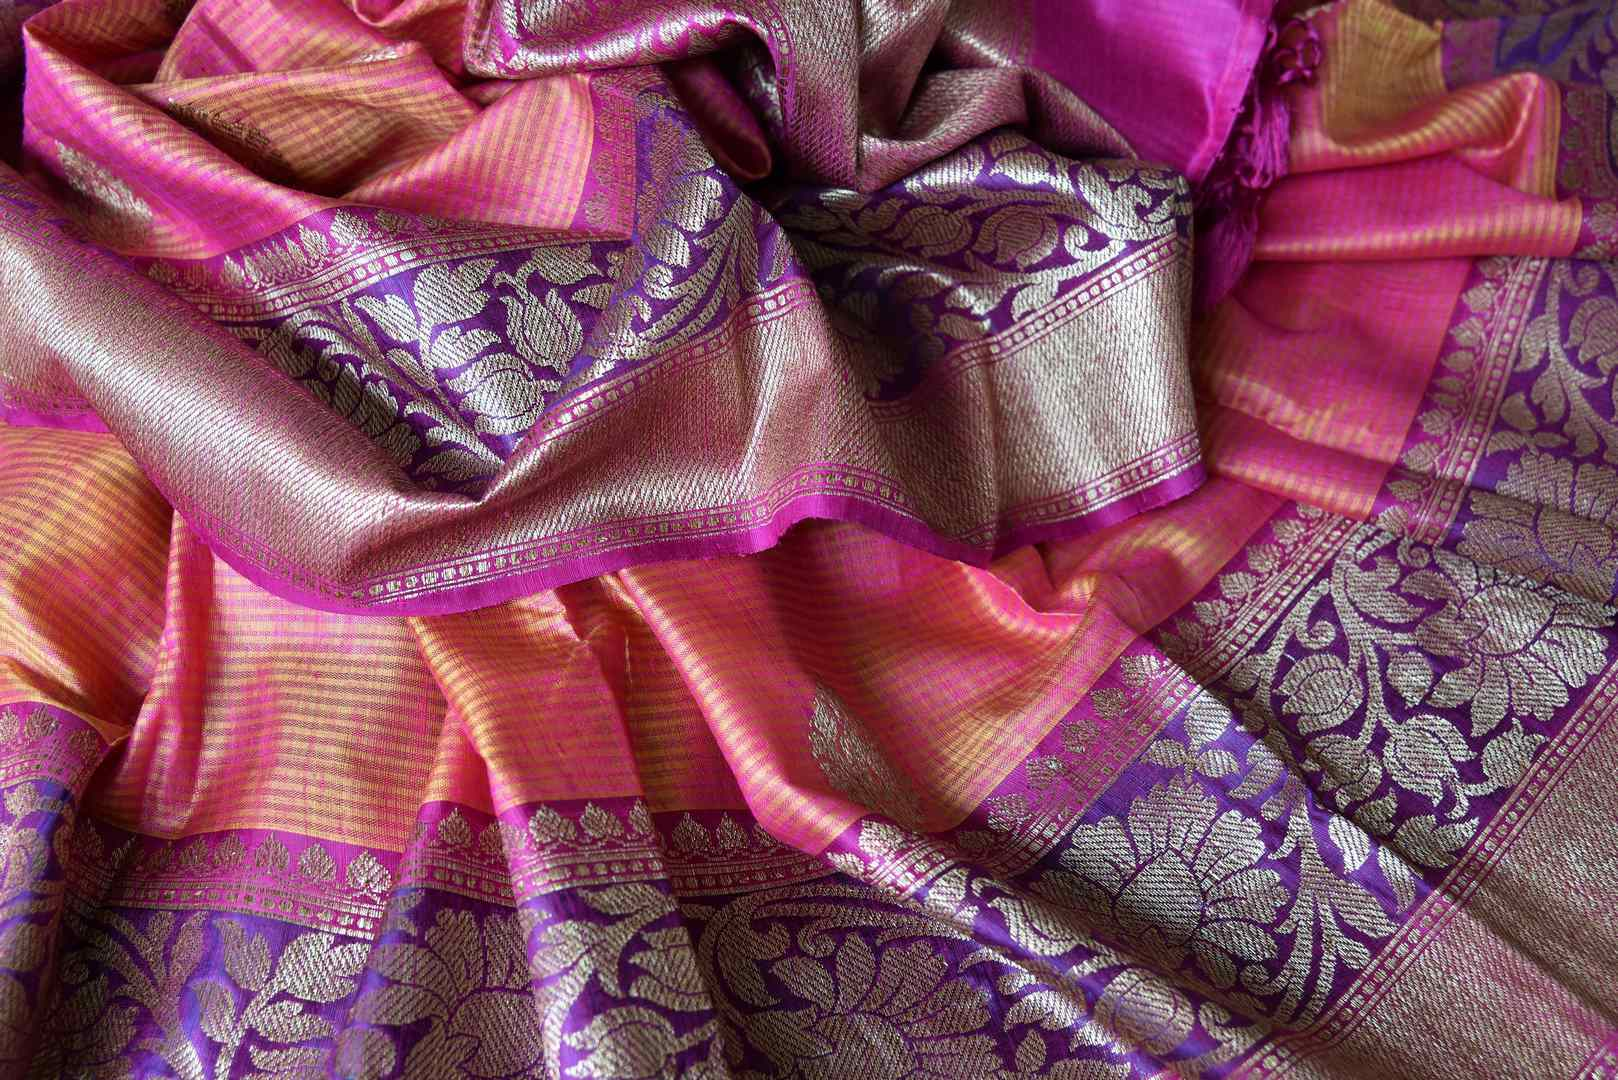 Shop orange pink tussar Banarasi sari with zari border online in USA. If you are heading to an Indian wedding and all you want is a rich traditional style then look no further than Pure Elegance Indian fashion store in USA. We have an exclusive range of Indian designer saris, traditional Banarasi sarees, silk saris and much more.-details